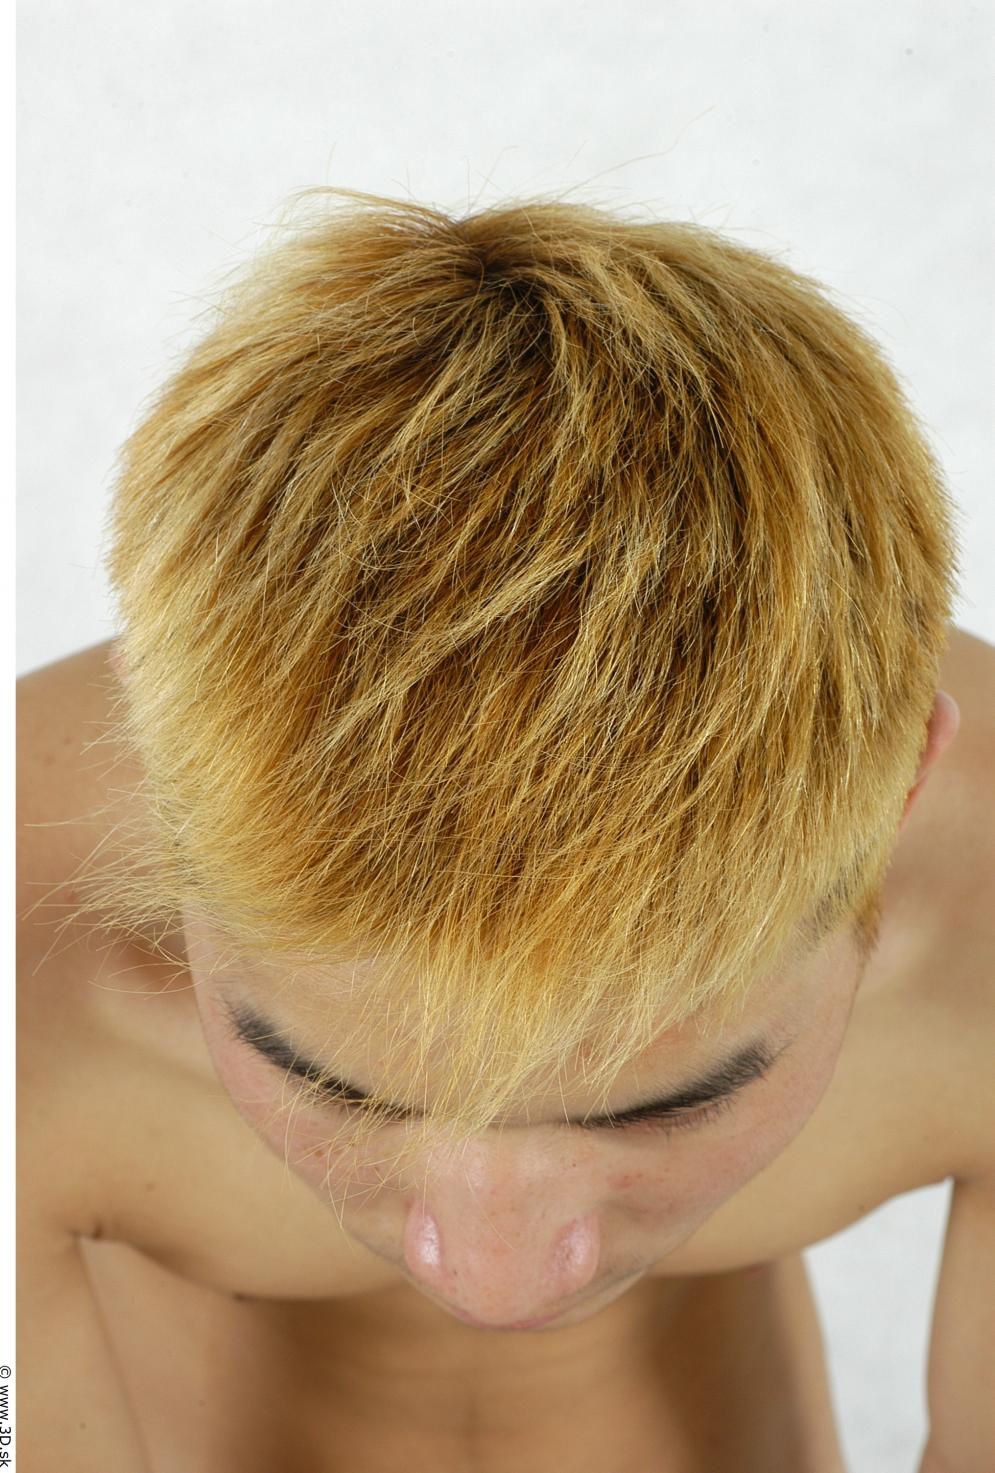 Image from Jinyong - Male asian photo references from 3D.sk - jinyong0004.jpg